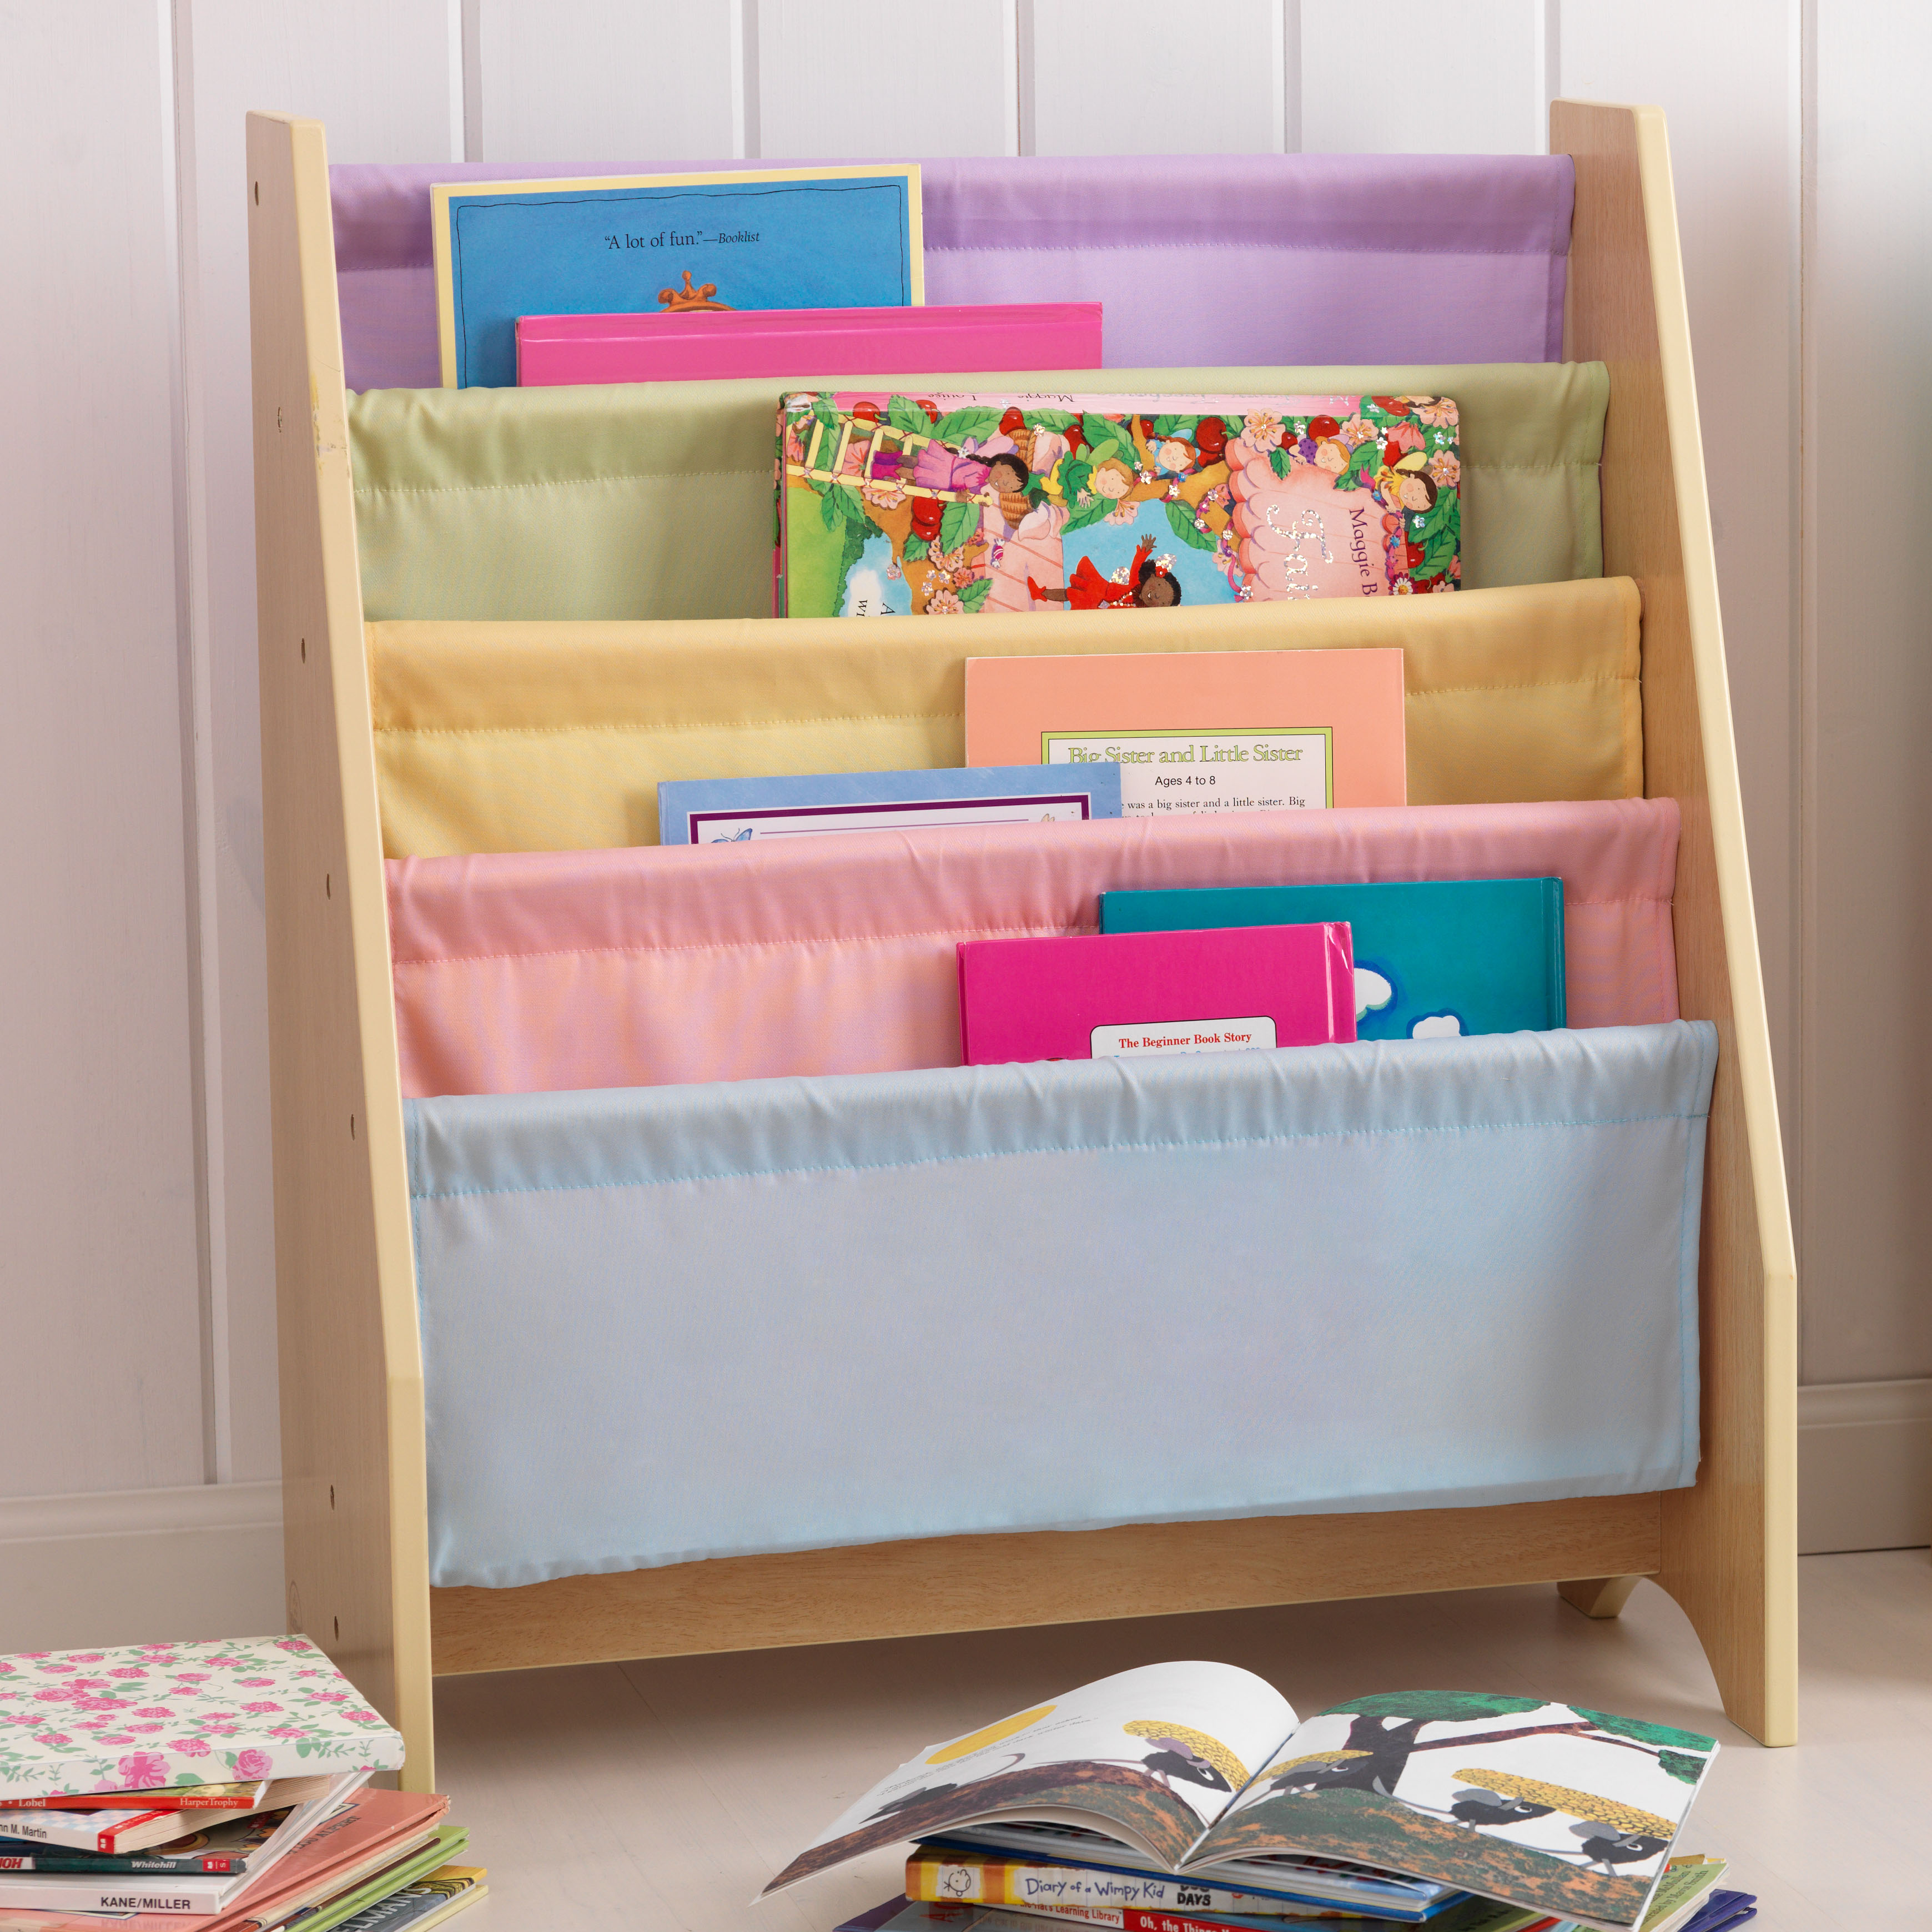 Lets furnish your kids rooms by Kidkraft